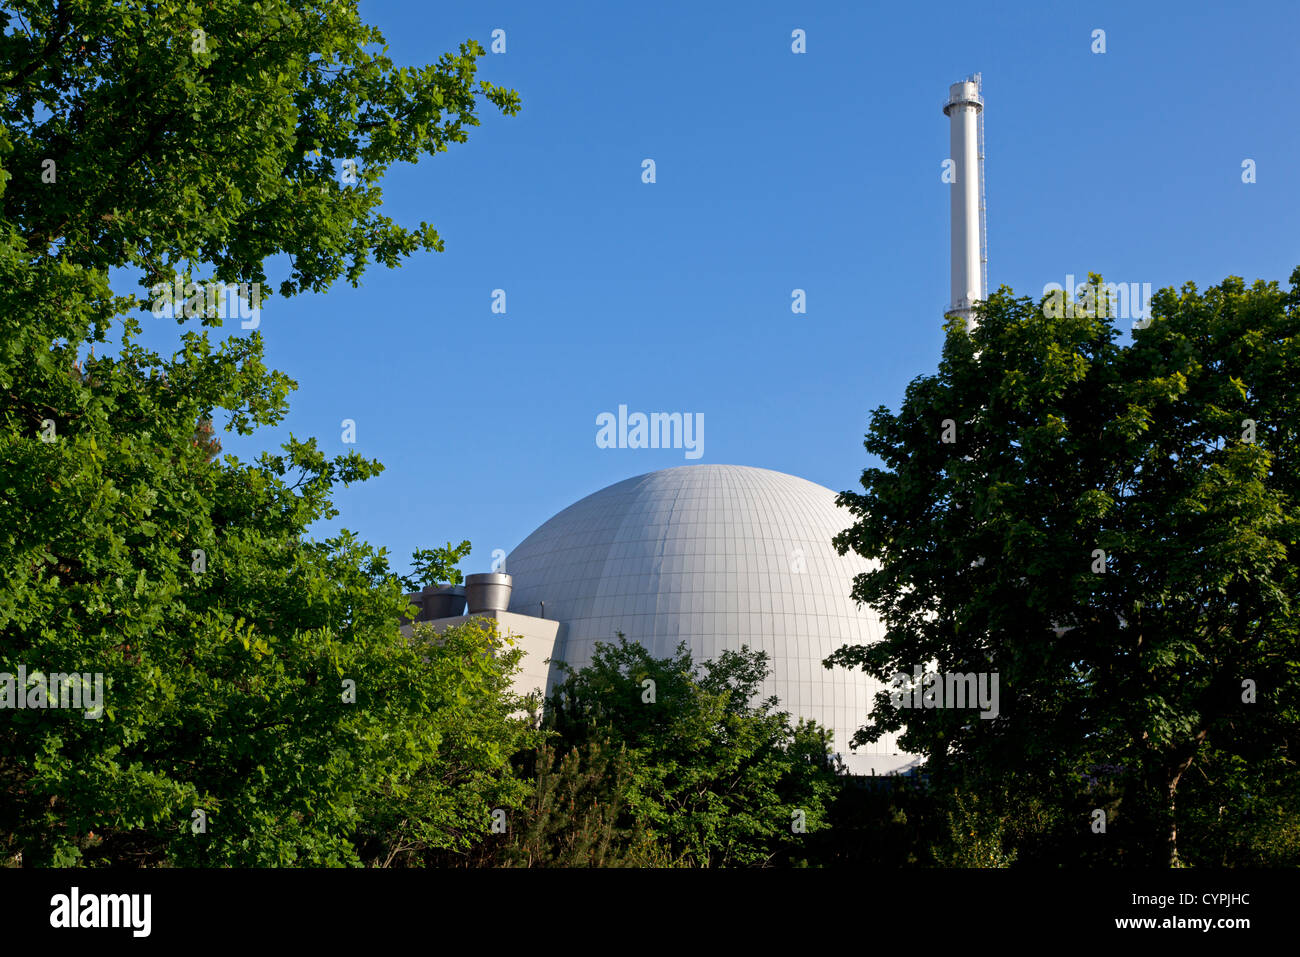 Nuclear power reactor, Germany - Stock Image